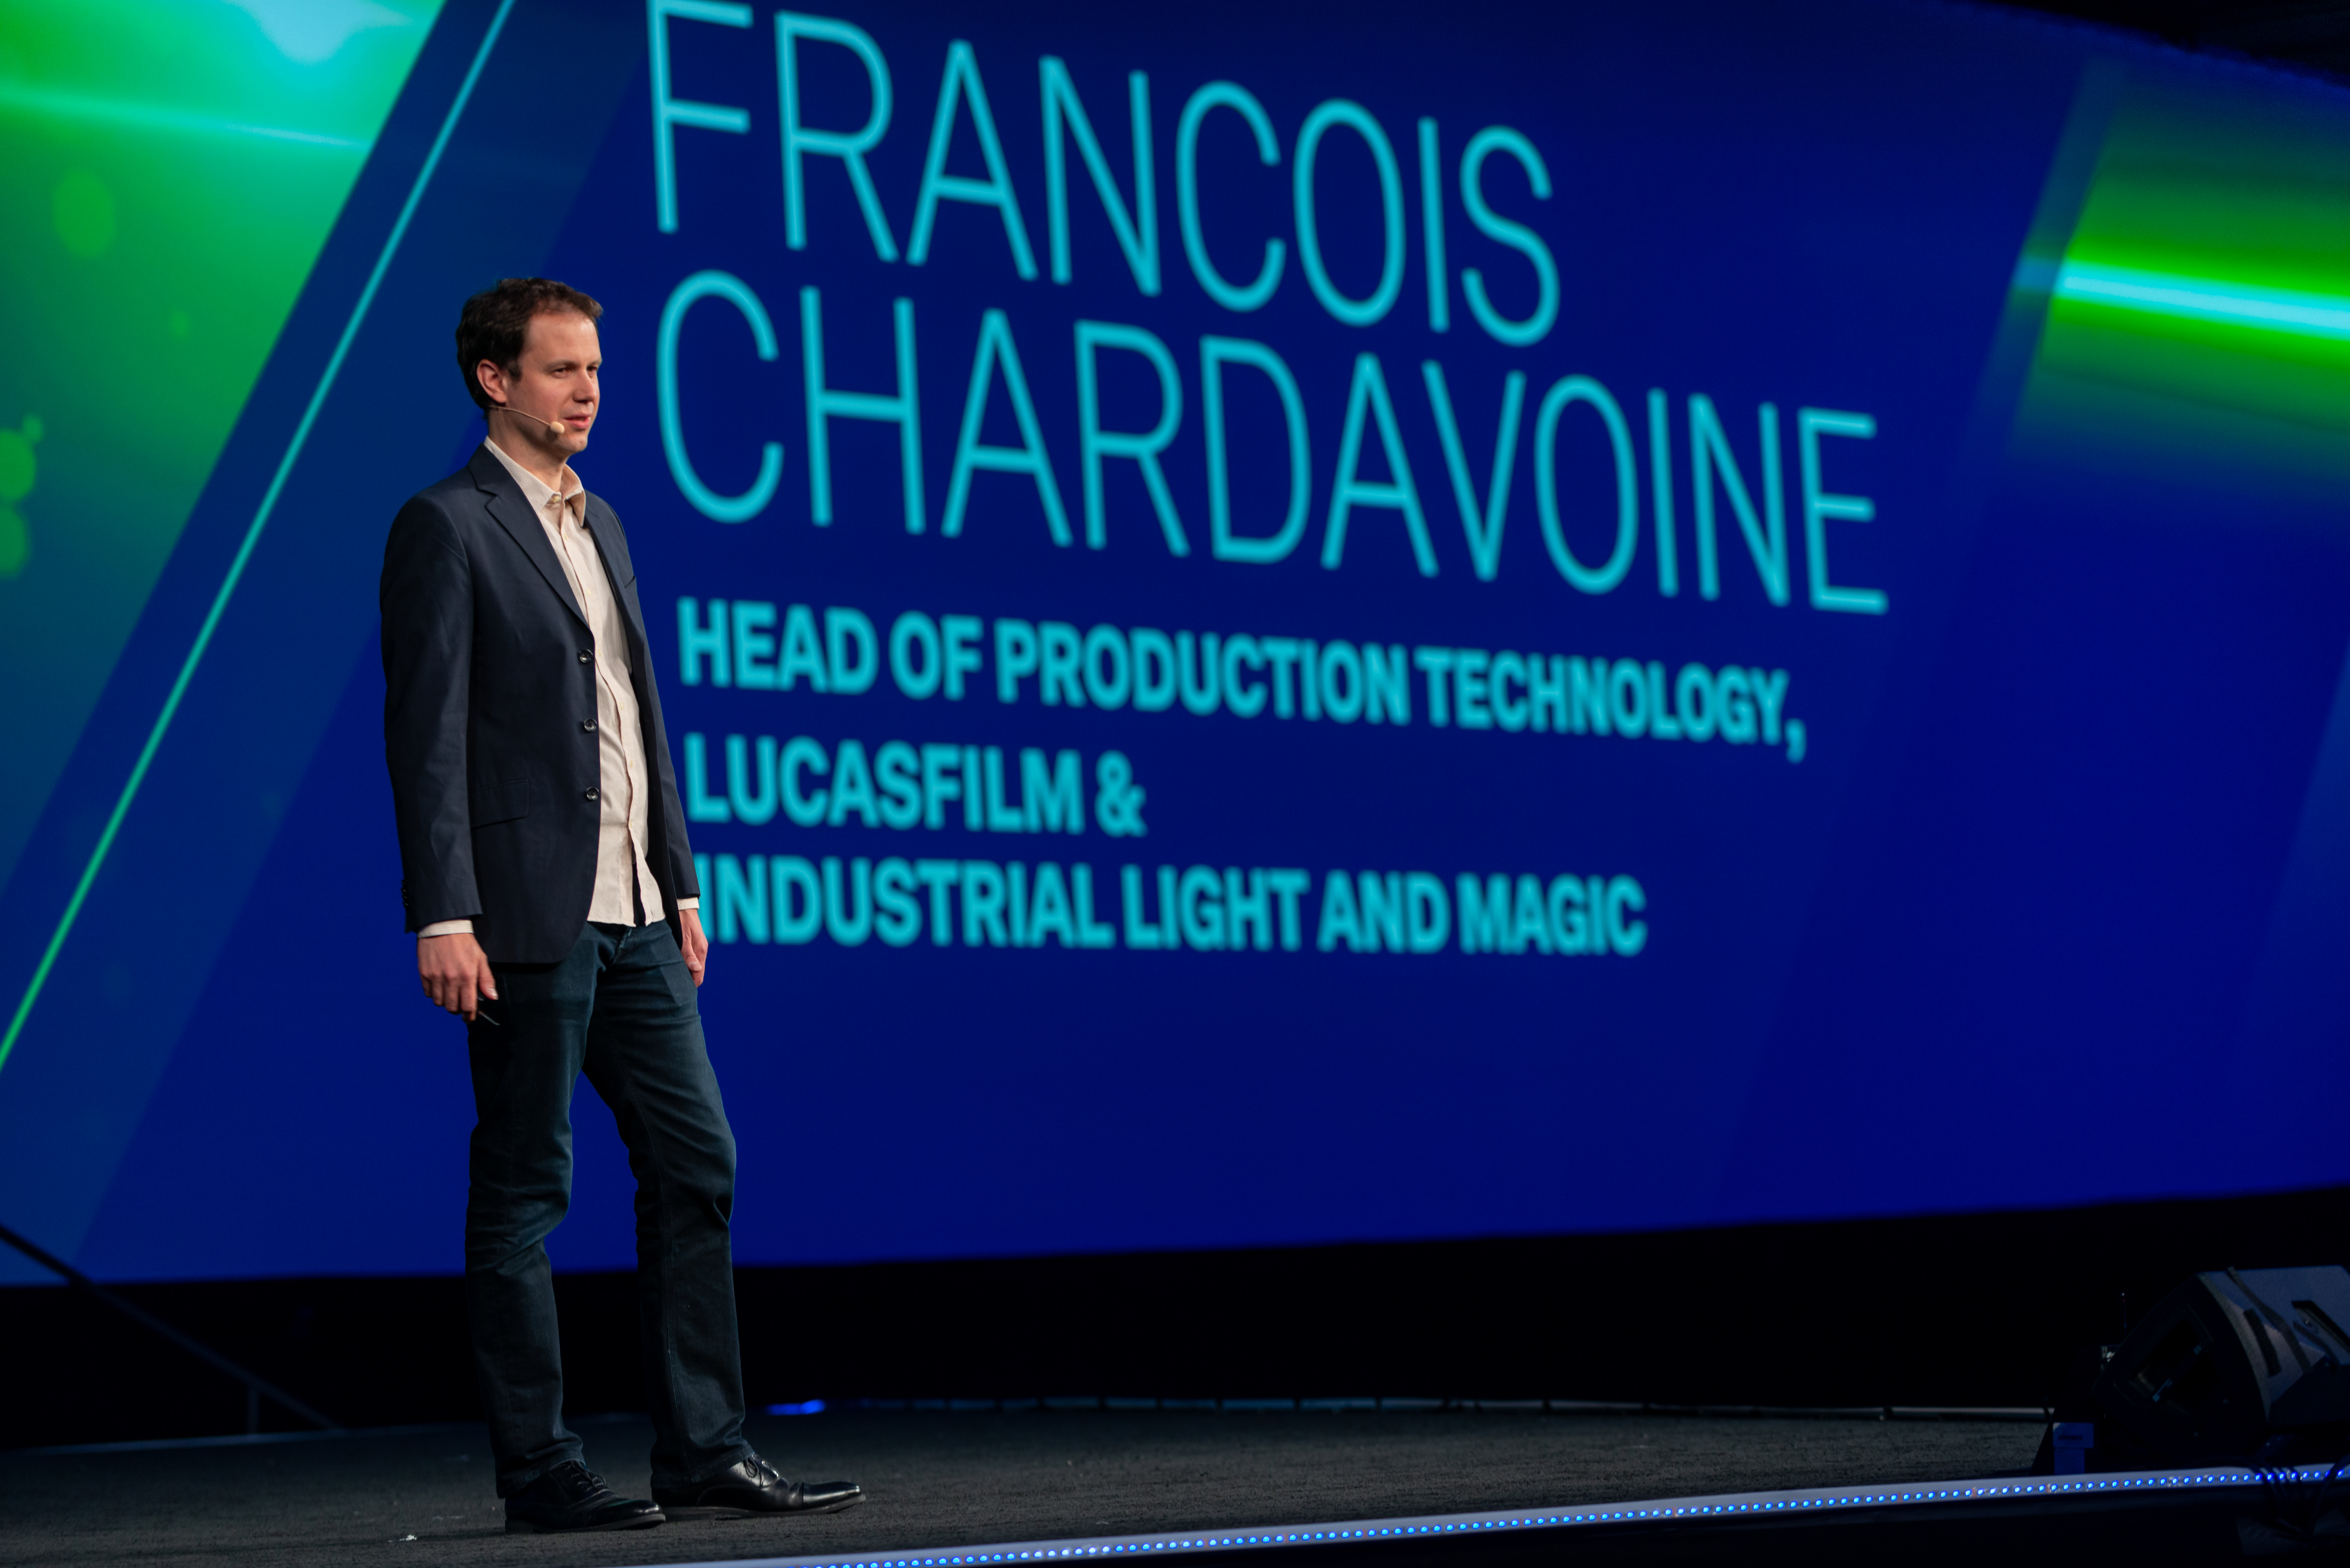 Francois Chardavoine gives a Keynote presentation at HxGN Live 2019 in Las Vegas